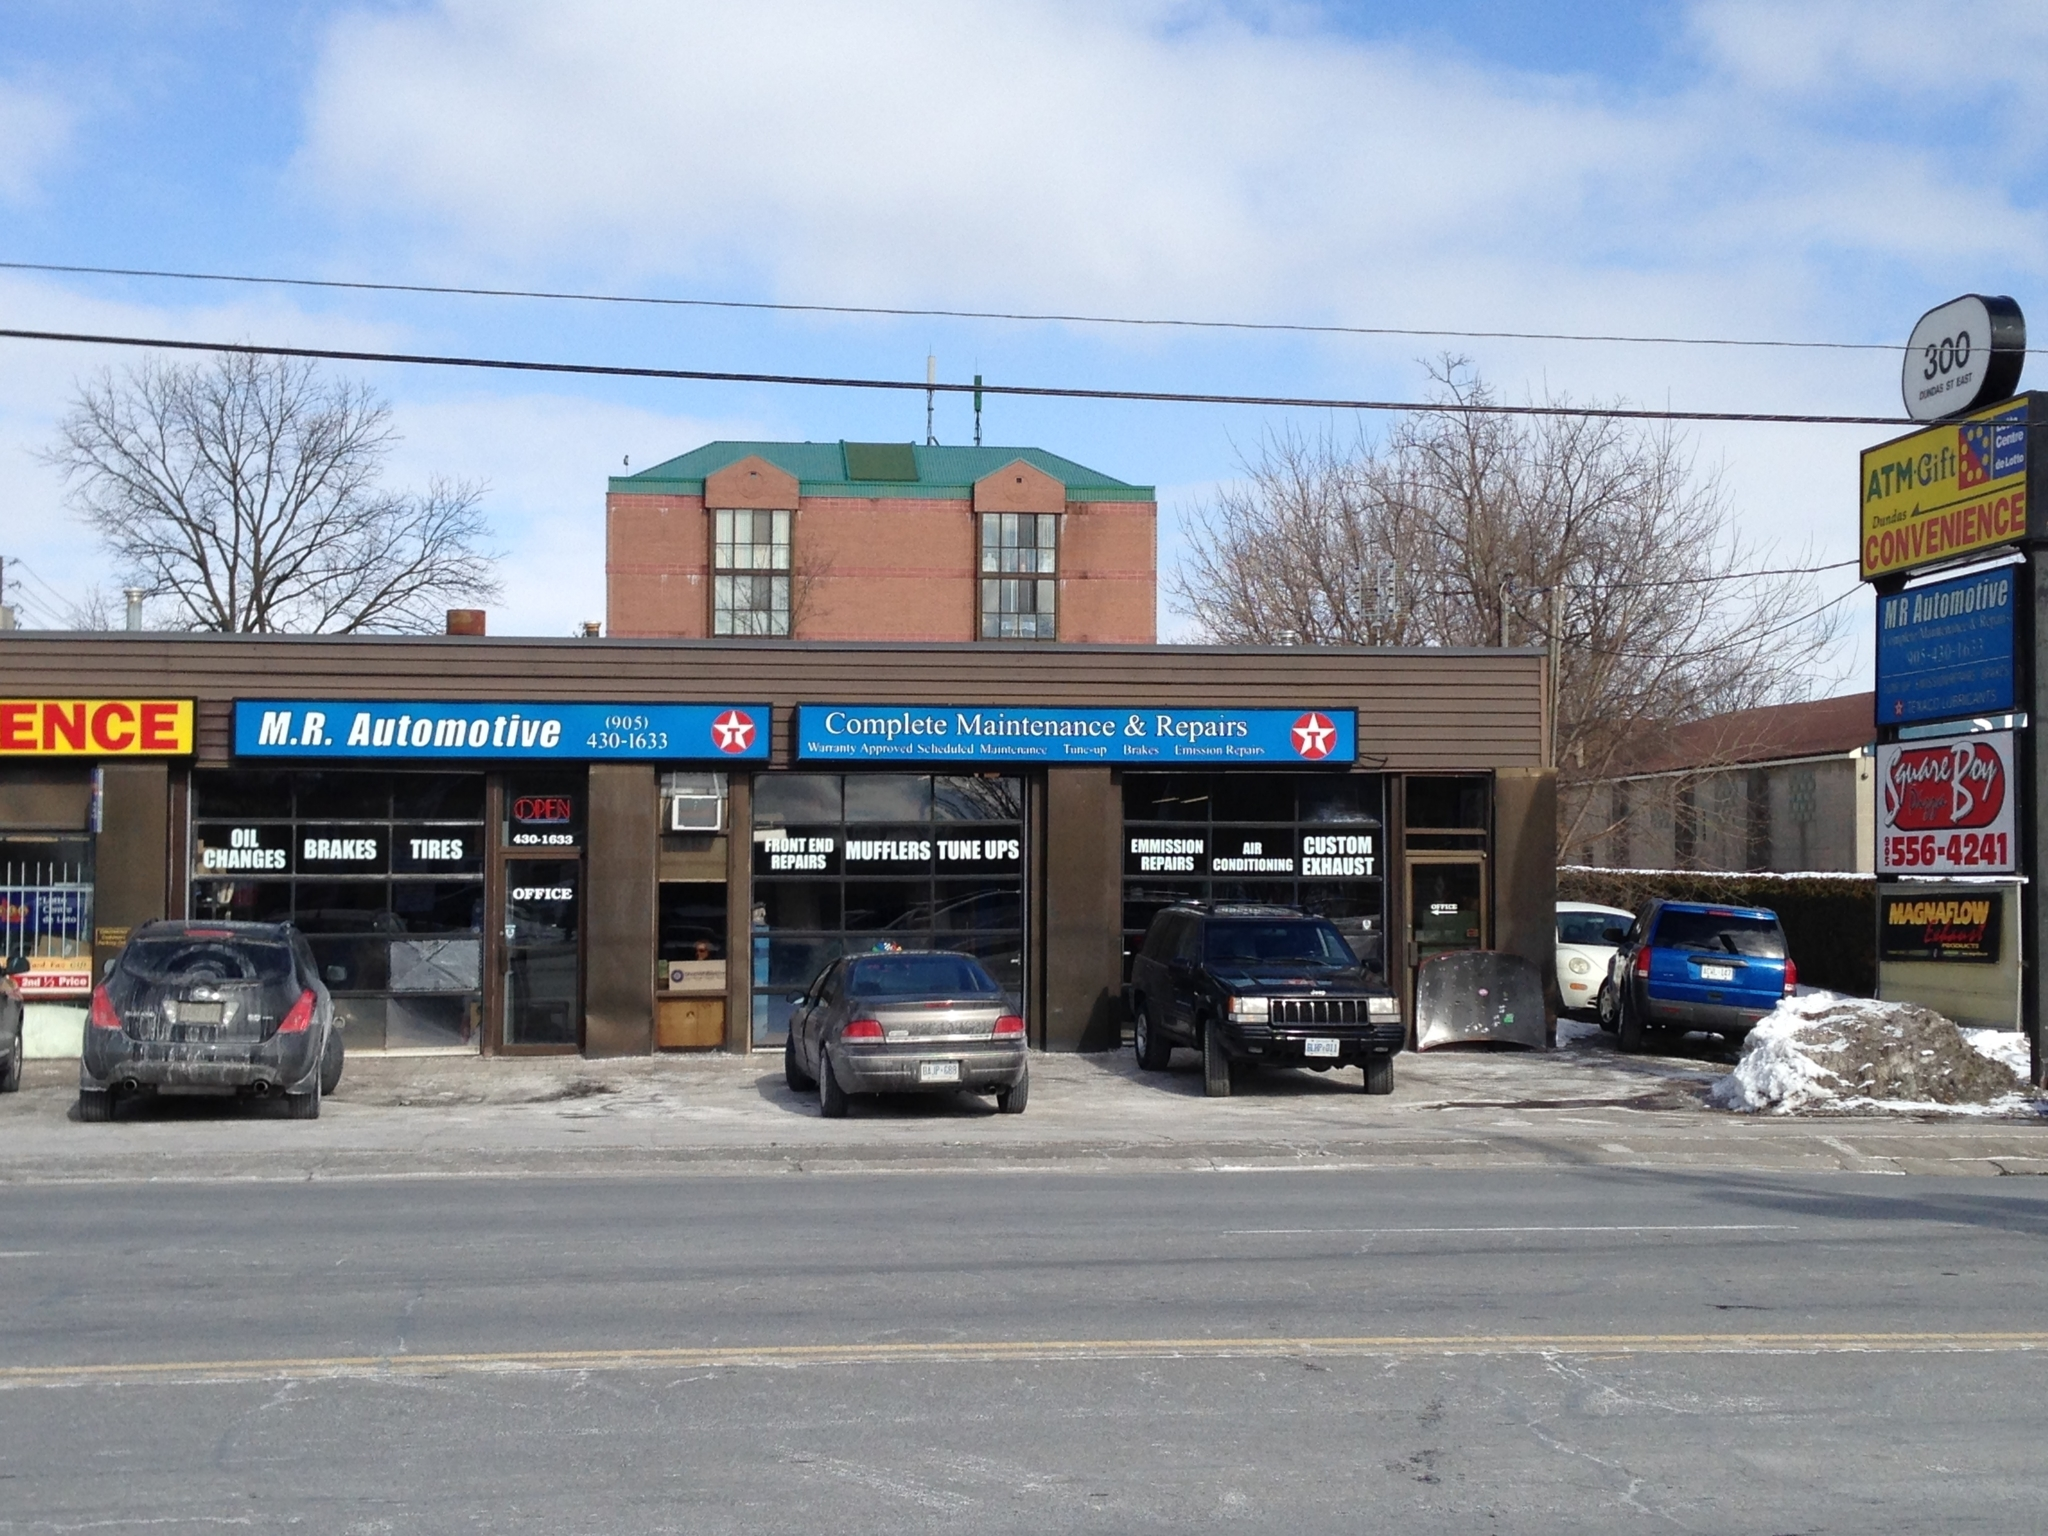 M.R. Automotive in Whitby